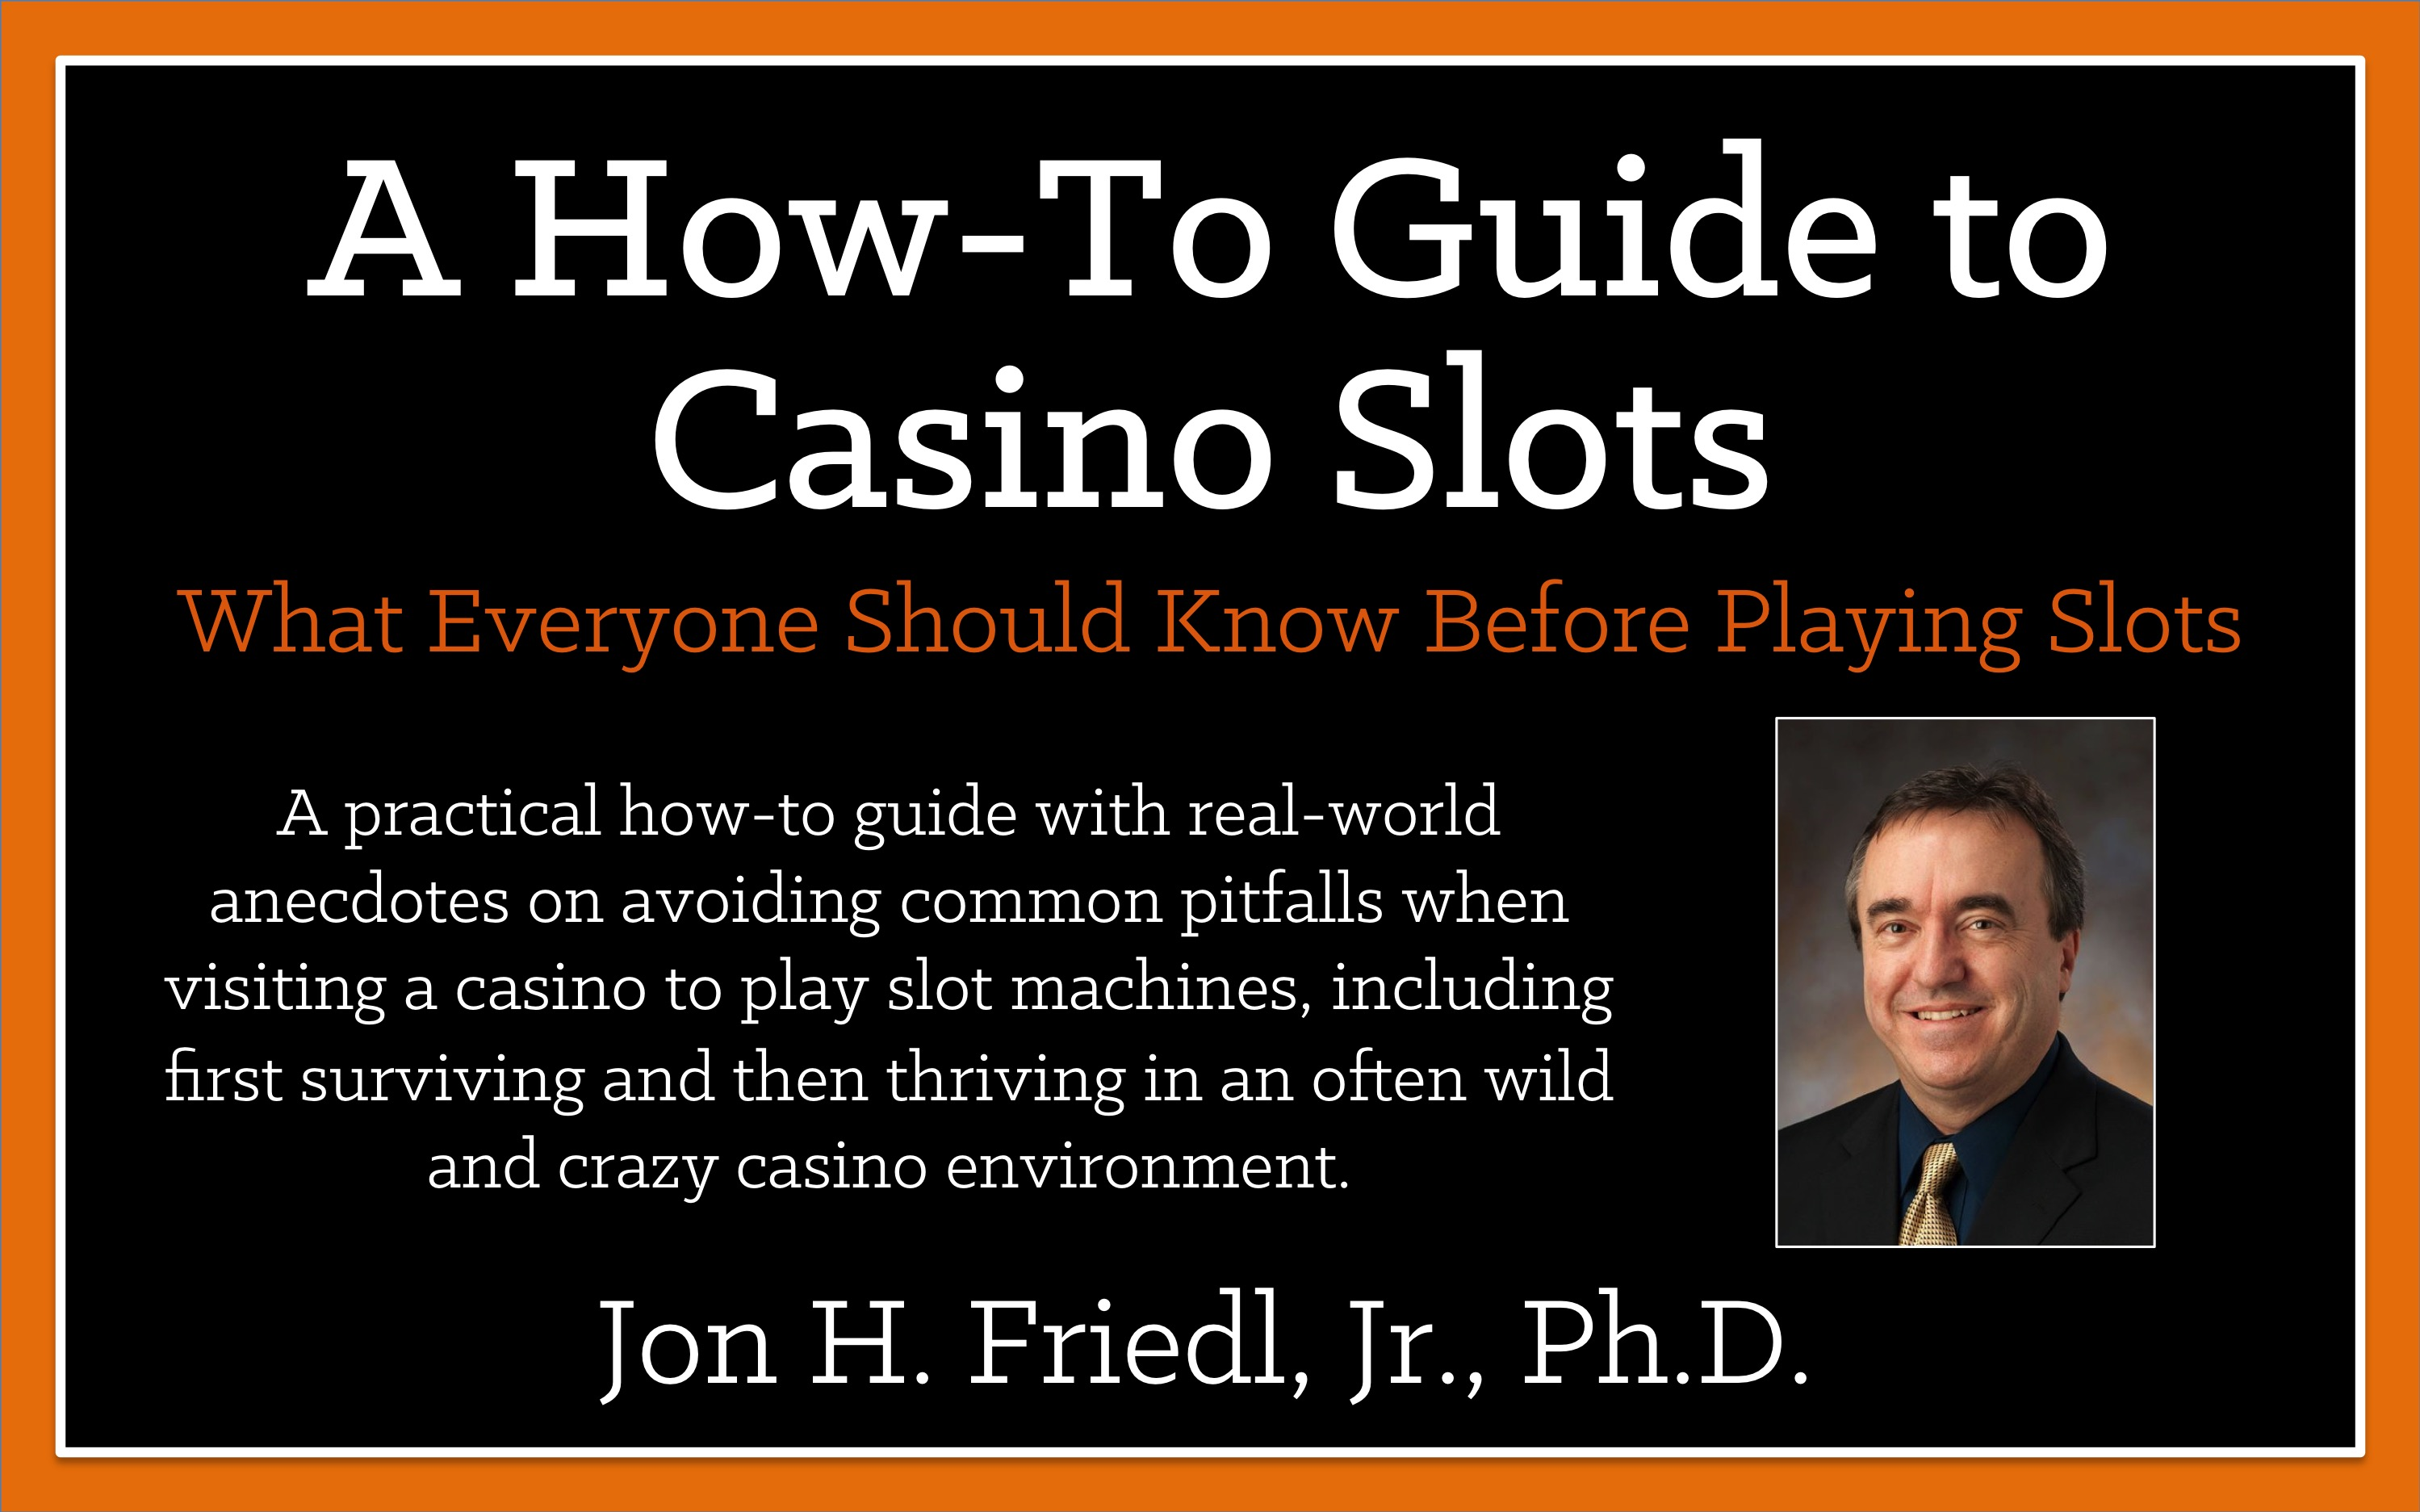 A How-To Guide to Casino Slots: What Everyone Should Know Before Playing Slots (Available on Amazon Kindle) and What to Expect from Professor Slots in 2018.